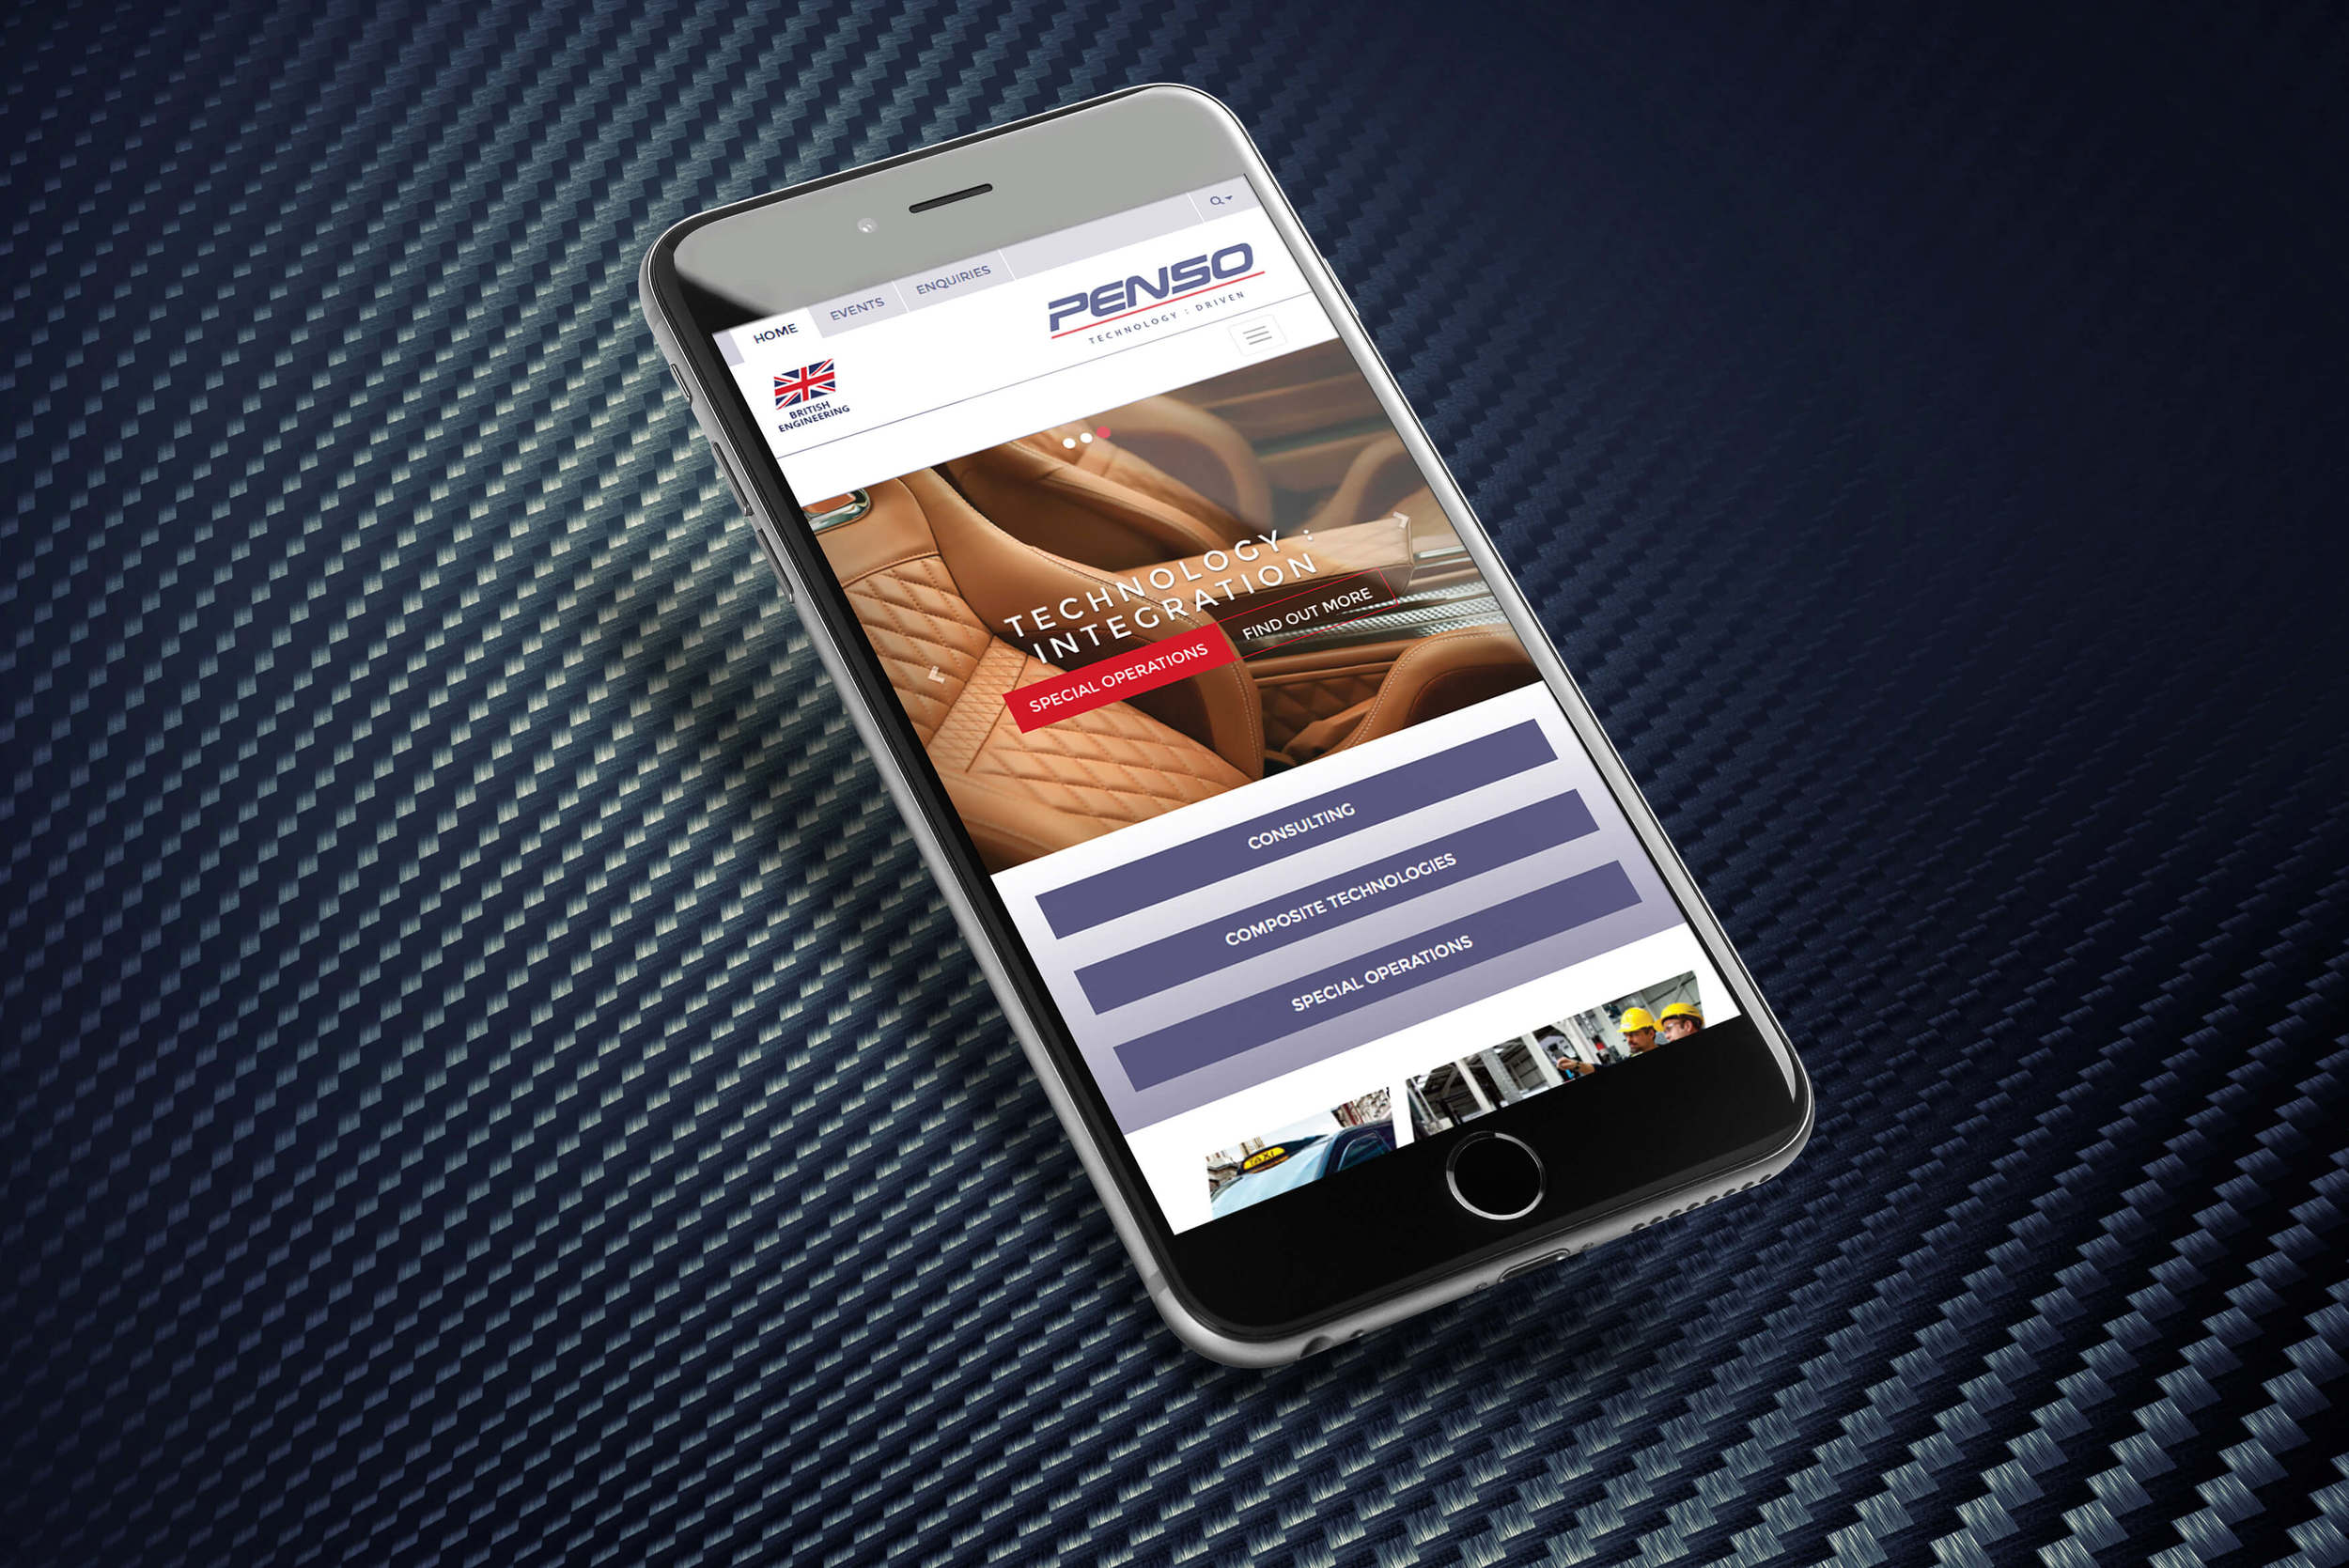 A new responsive website design By Create Onsight for Penso, Coventry.